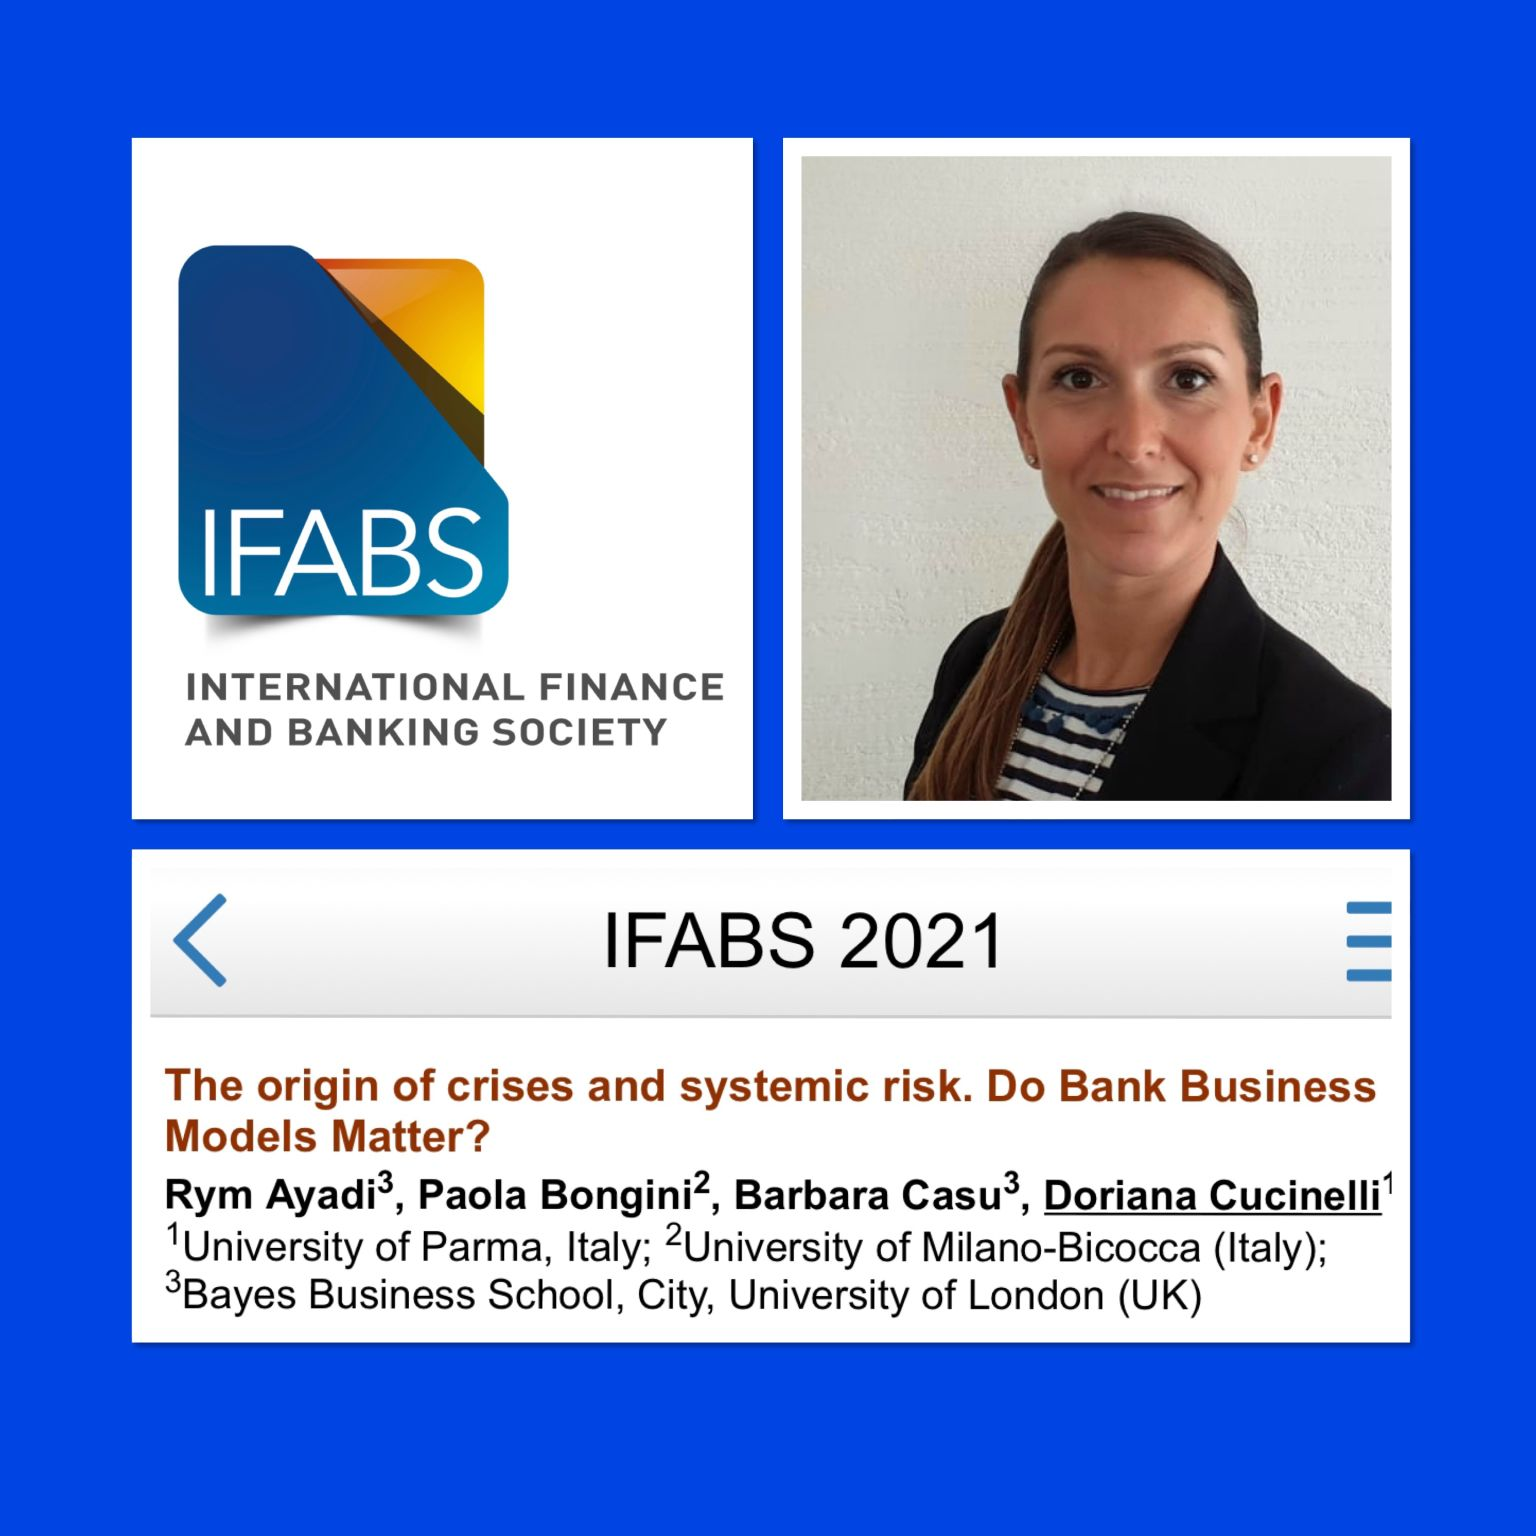 EMEA Research Fellow Doriana Cucinelli presents paper on Bank Business Models at the IFABS 2021 Oxford Conference